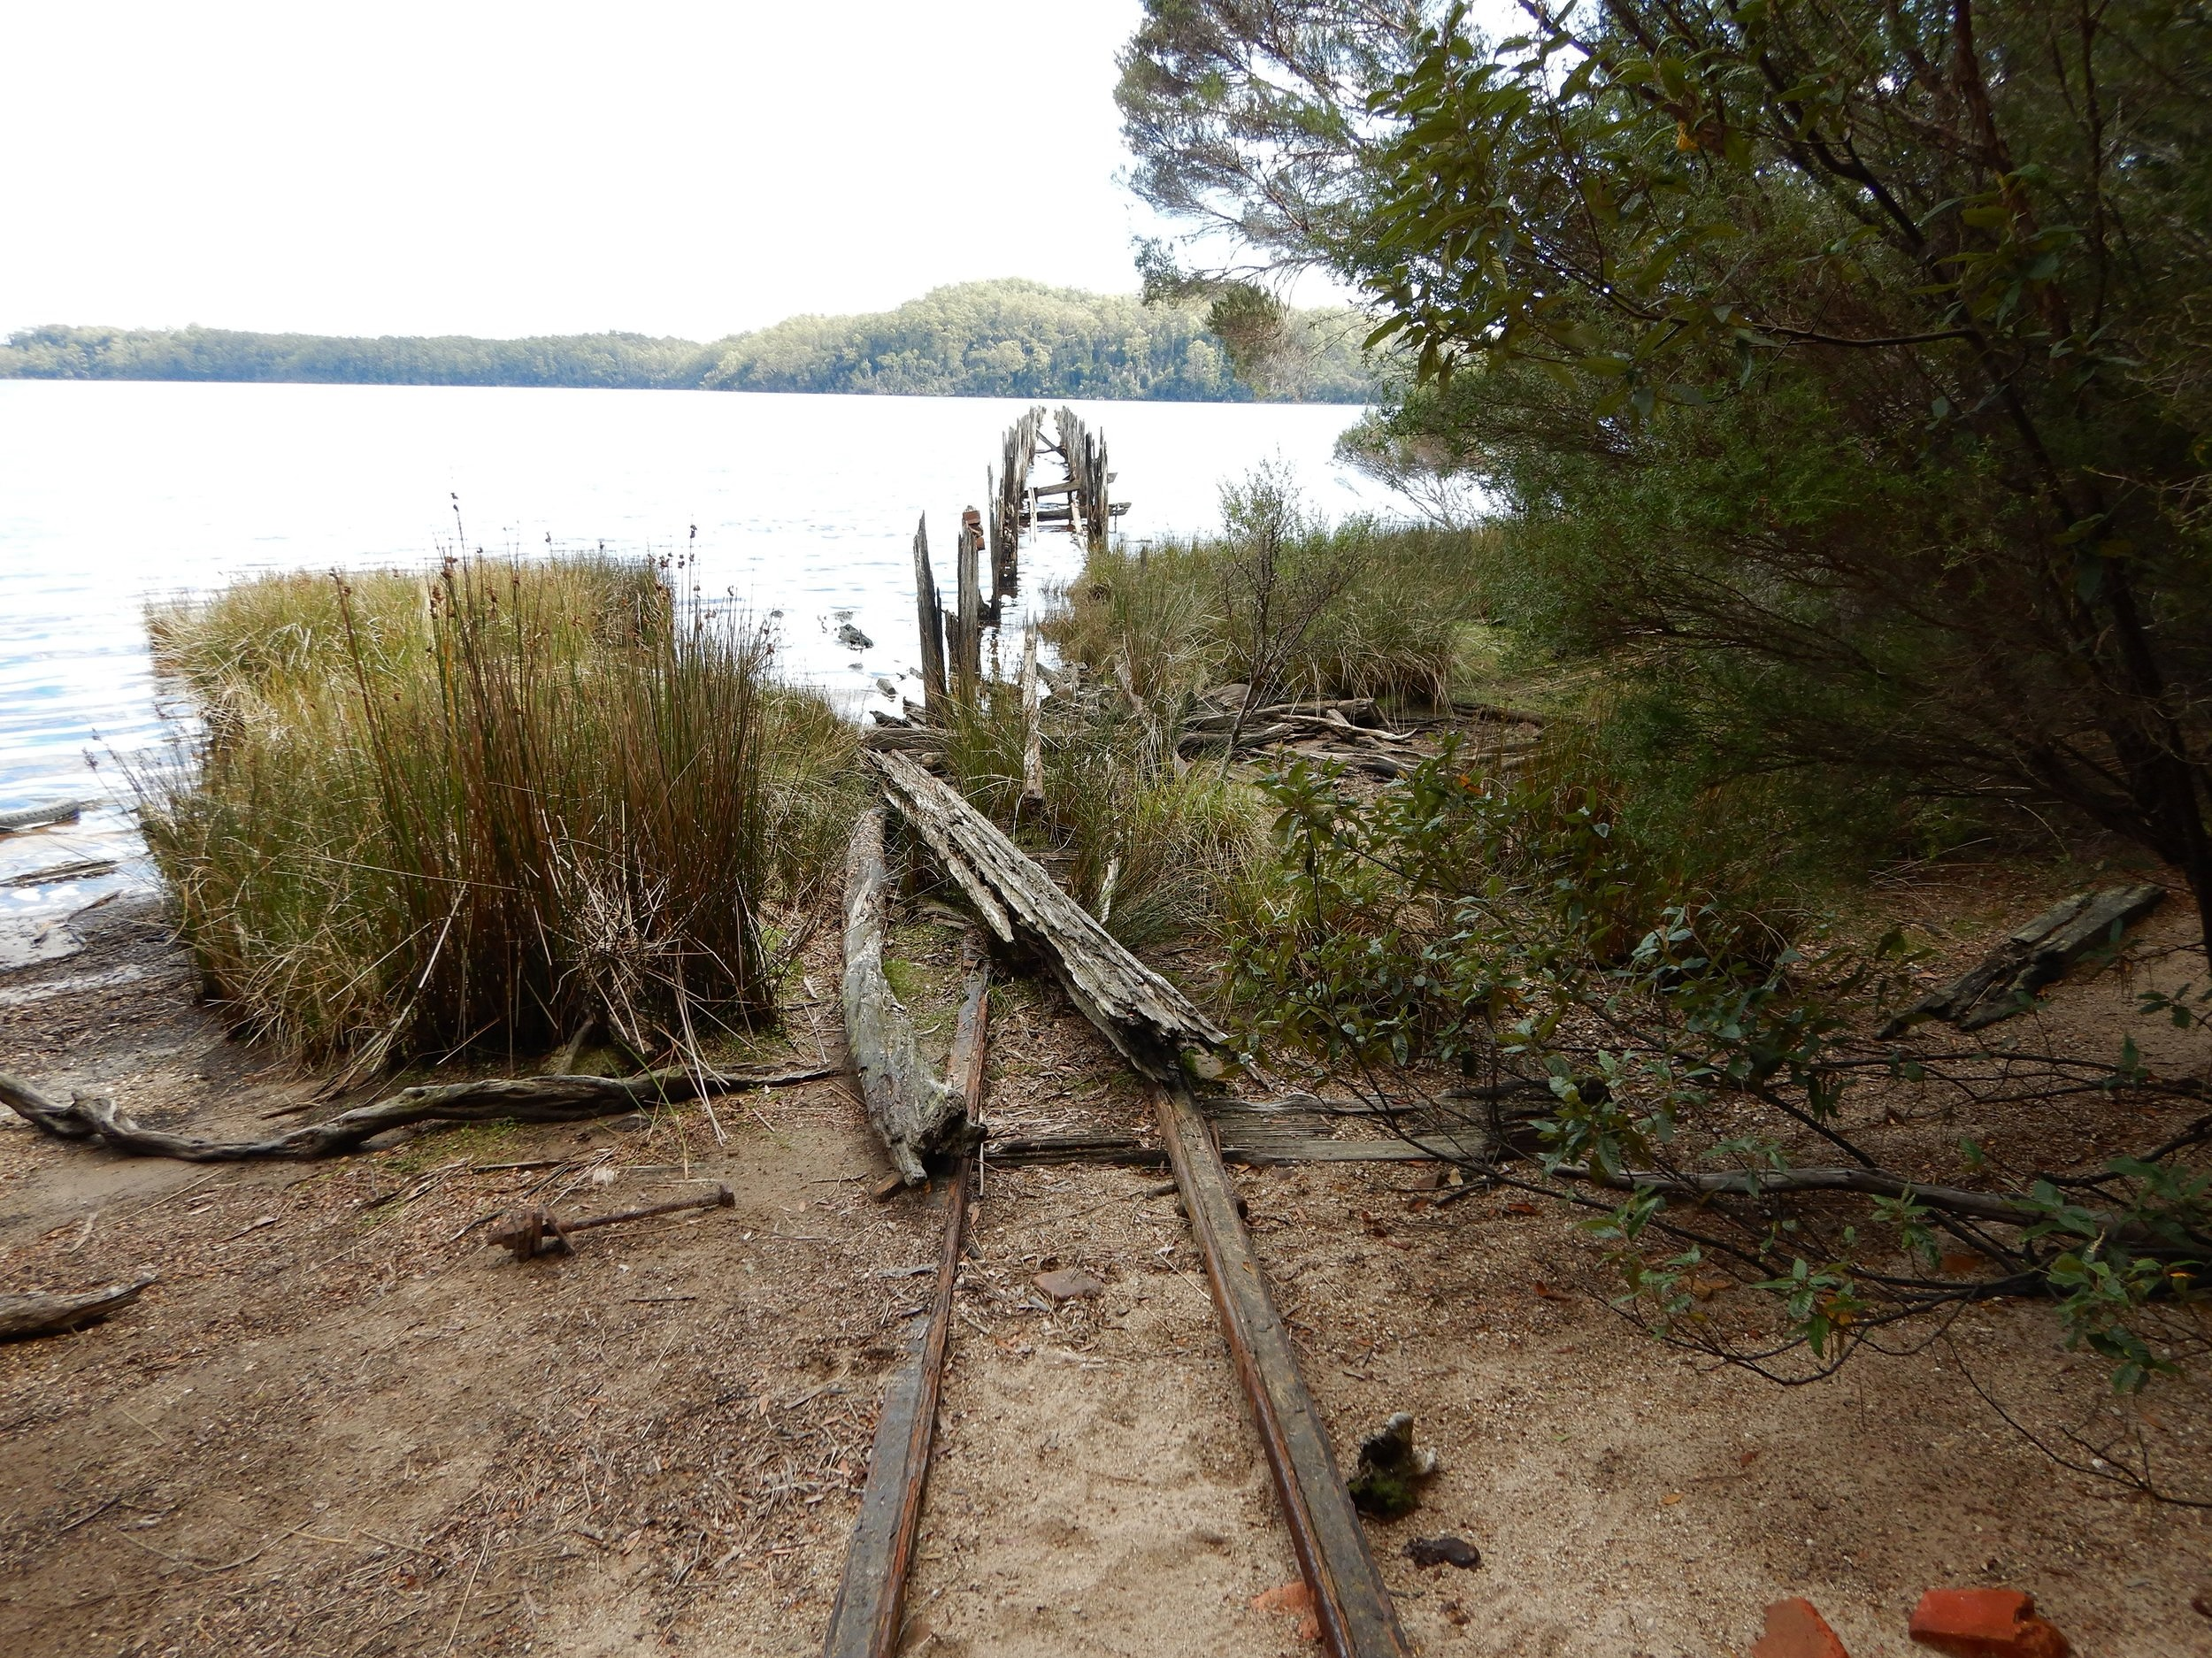 the rail tracks leading onto the wharf are still there